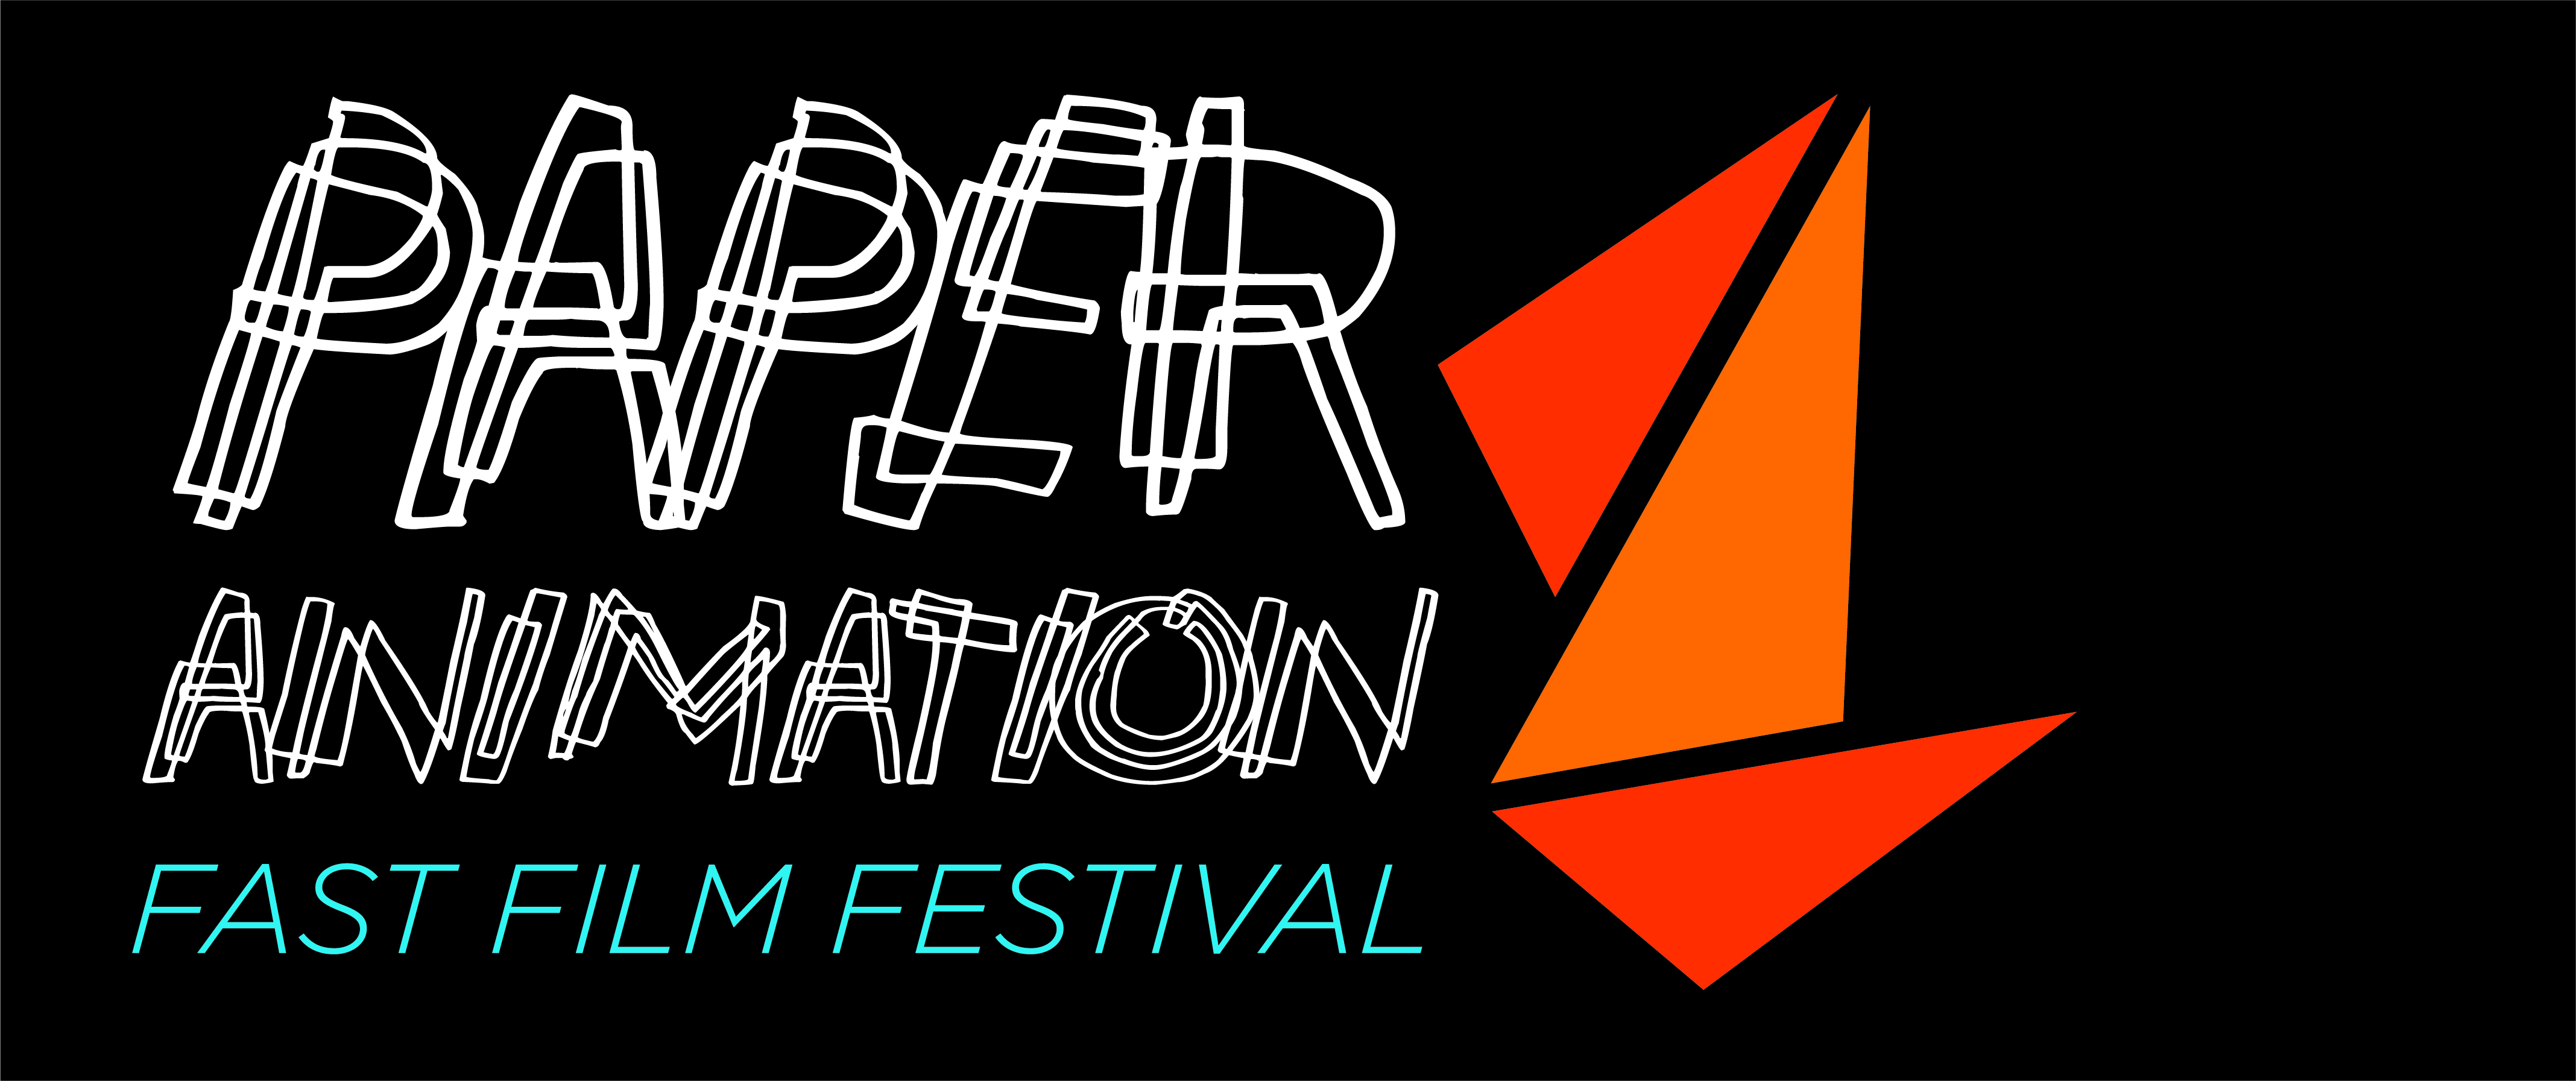 Paper Animation Fest Logo - white scribble text and orange triangles that replicate folded paper